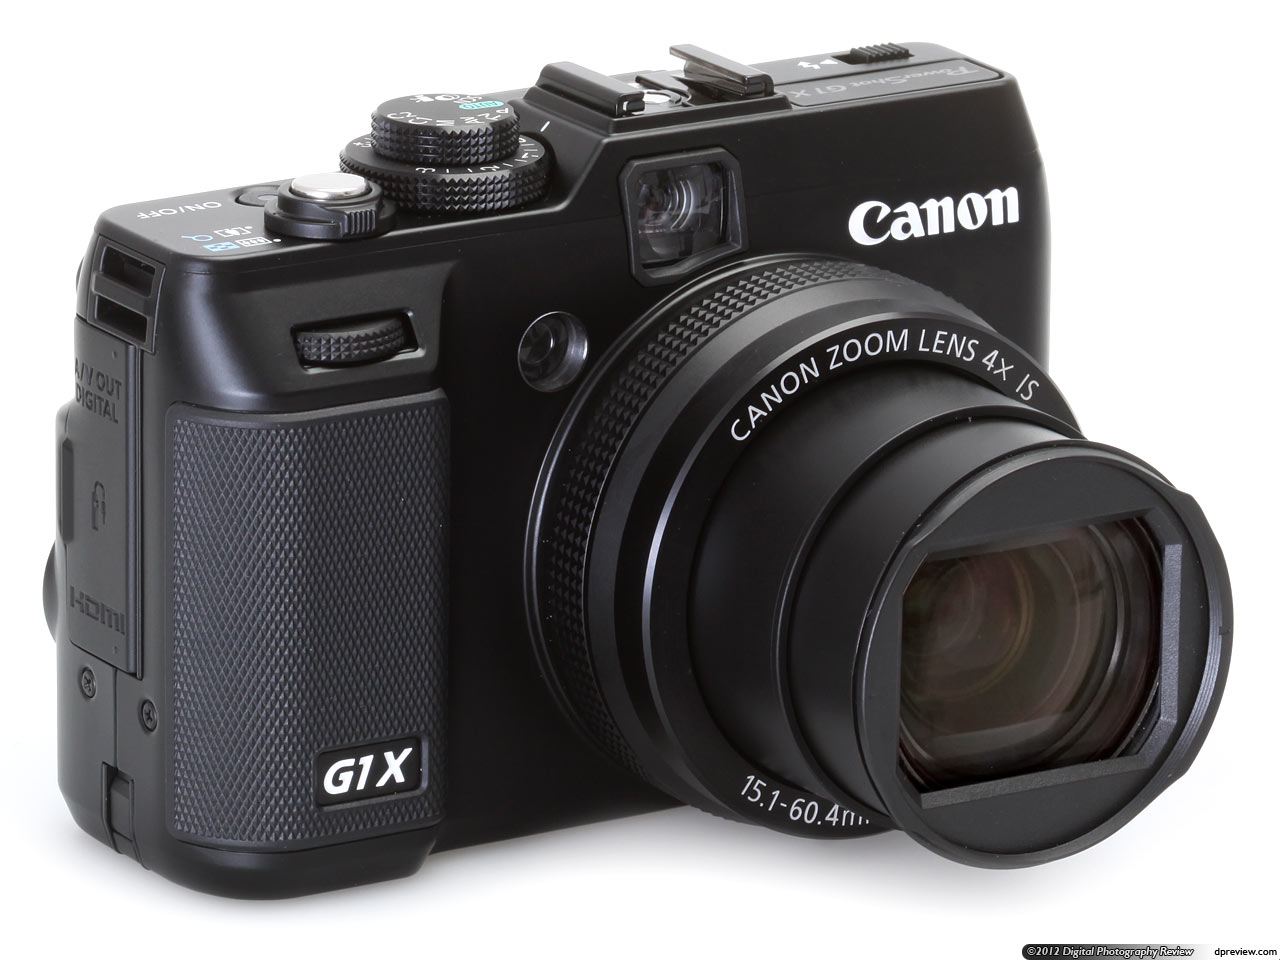 Image for Canon PowerShot G1 X Mark II Digital Camera (Black)